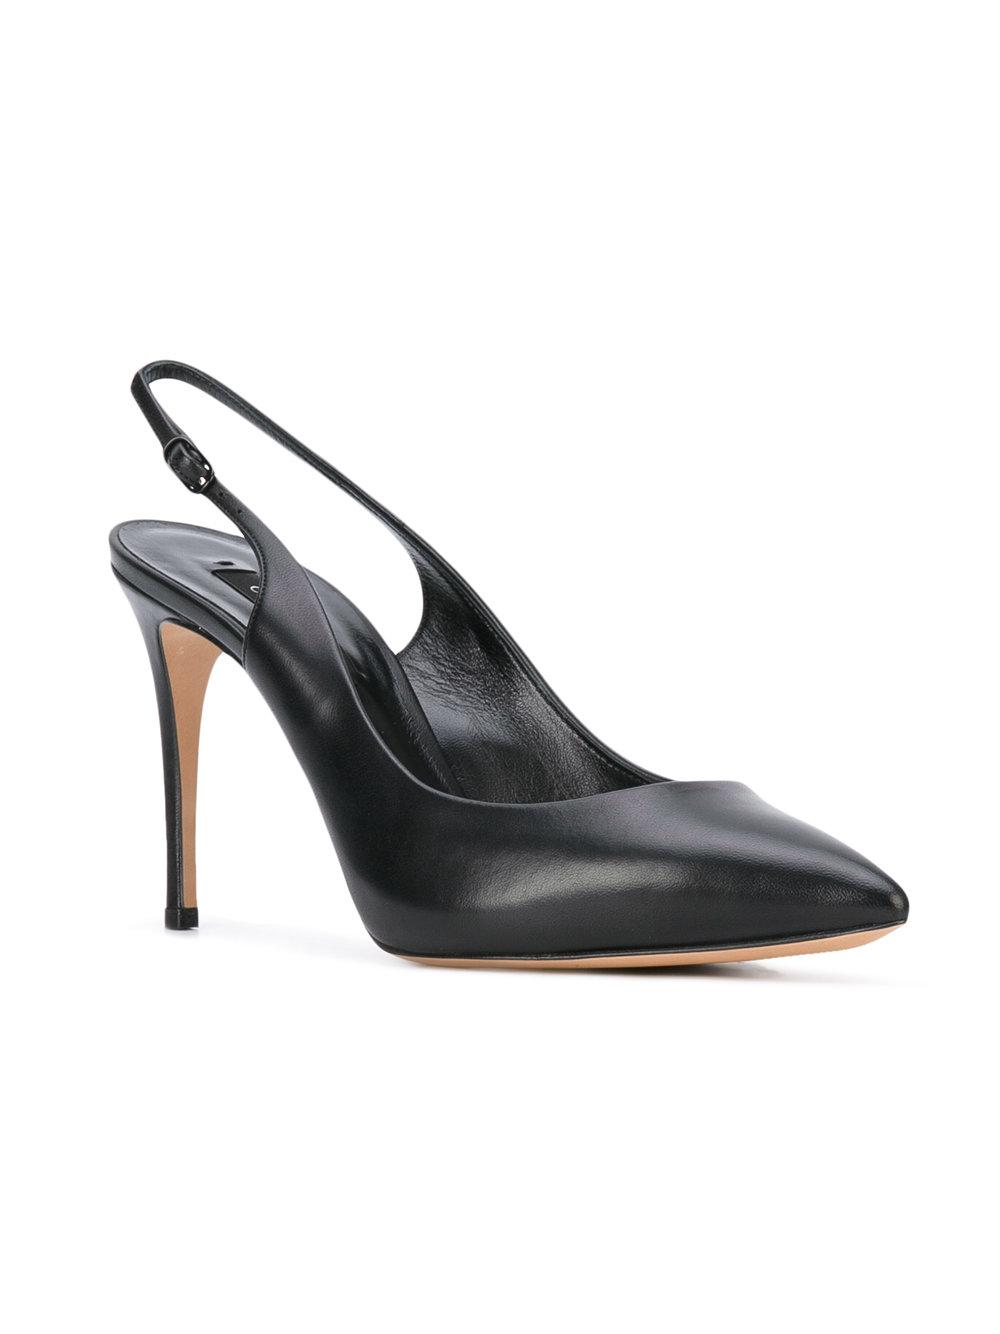 Lyst Casadei Slingback Pumps In Black